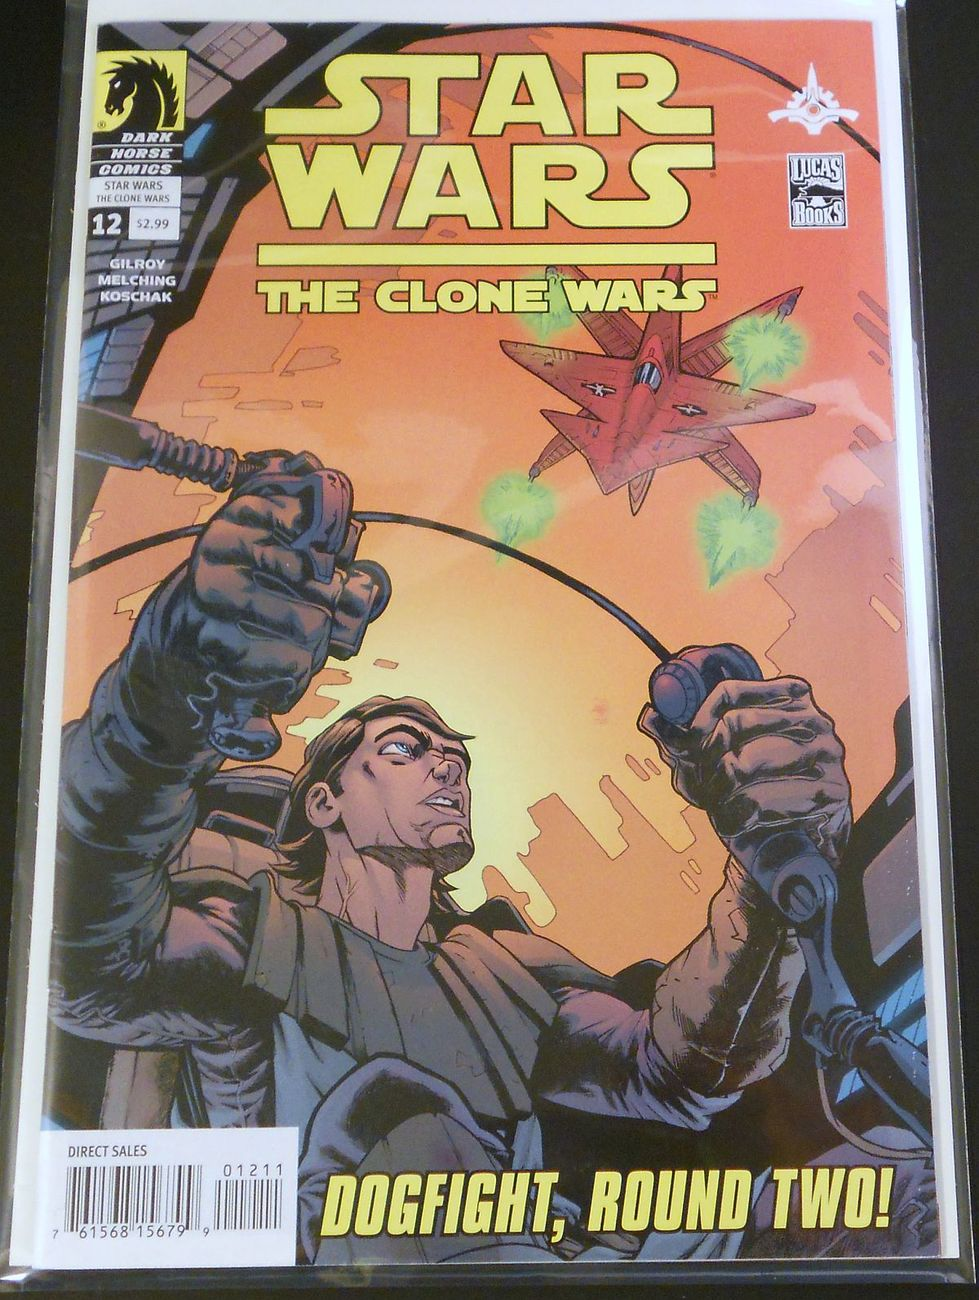 Star Wars Clone Wars Dark Horse Comics 12 Dogfight, Round Two